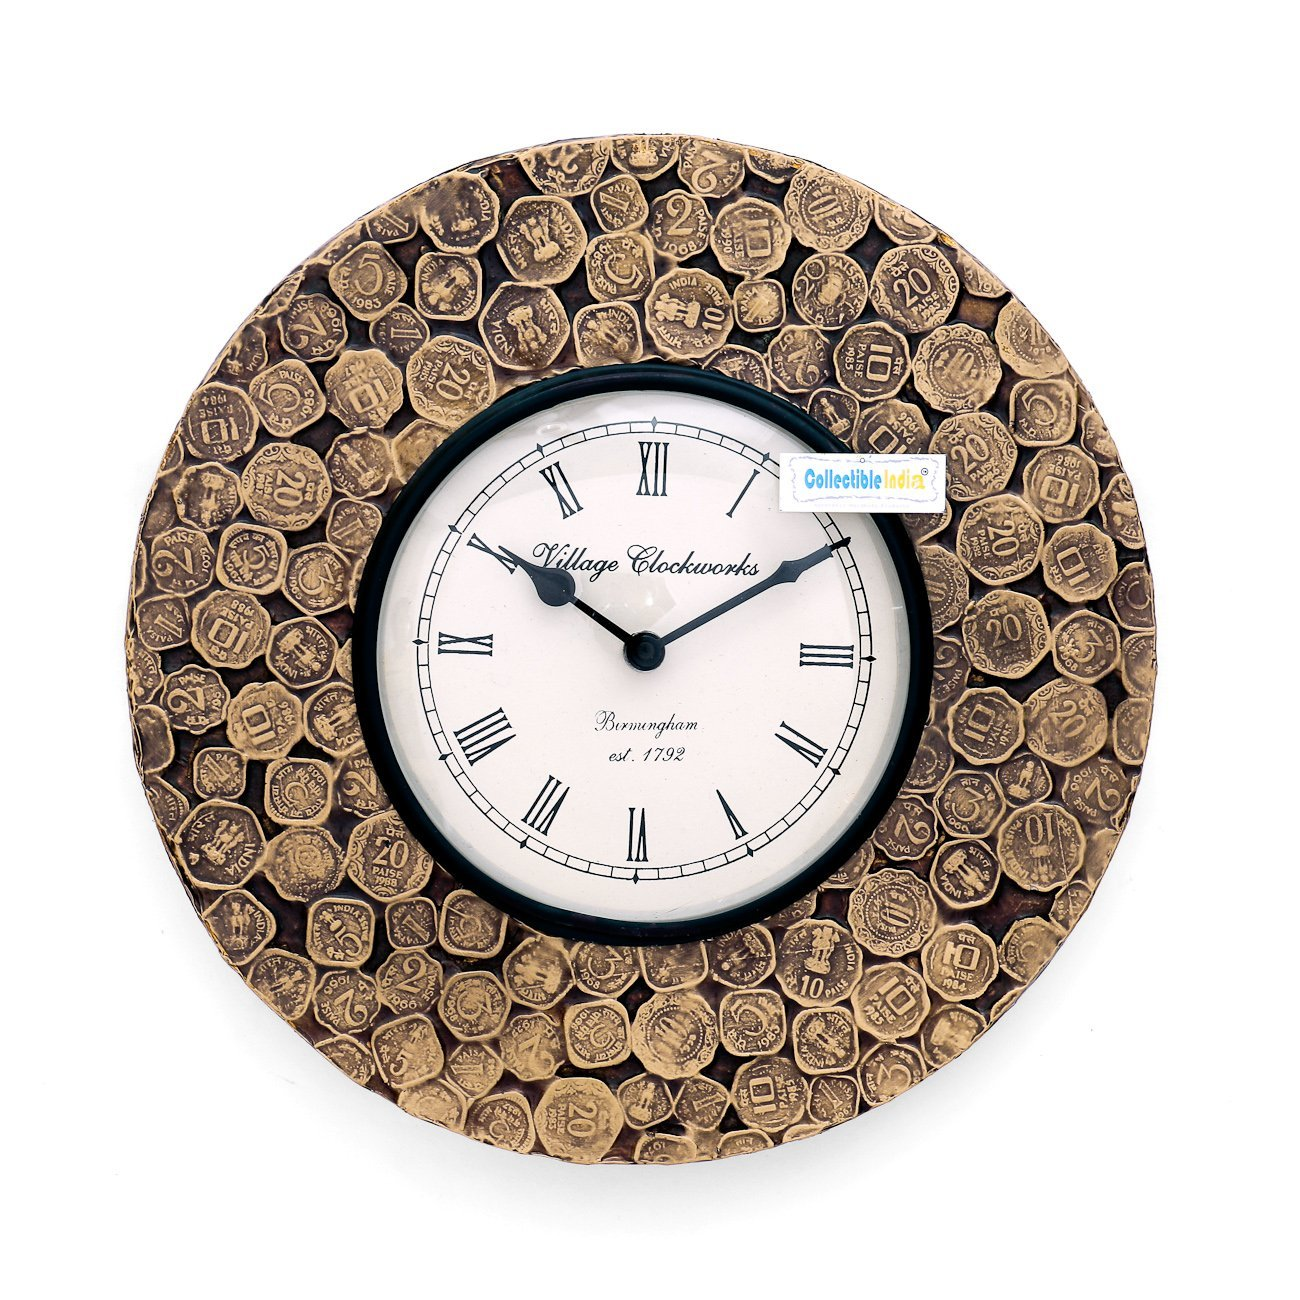 Buy collectible india antique coins studded unique decorative buy collectible india antique coins studded unique decorative wooden analog wall clock 3048 cm x 4 cm x 3048 cm gold online at low prices in india amipublicfo Gallery